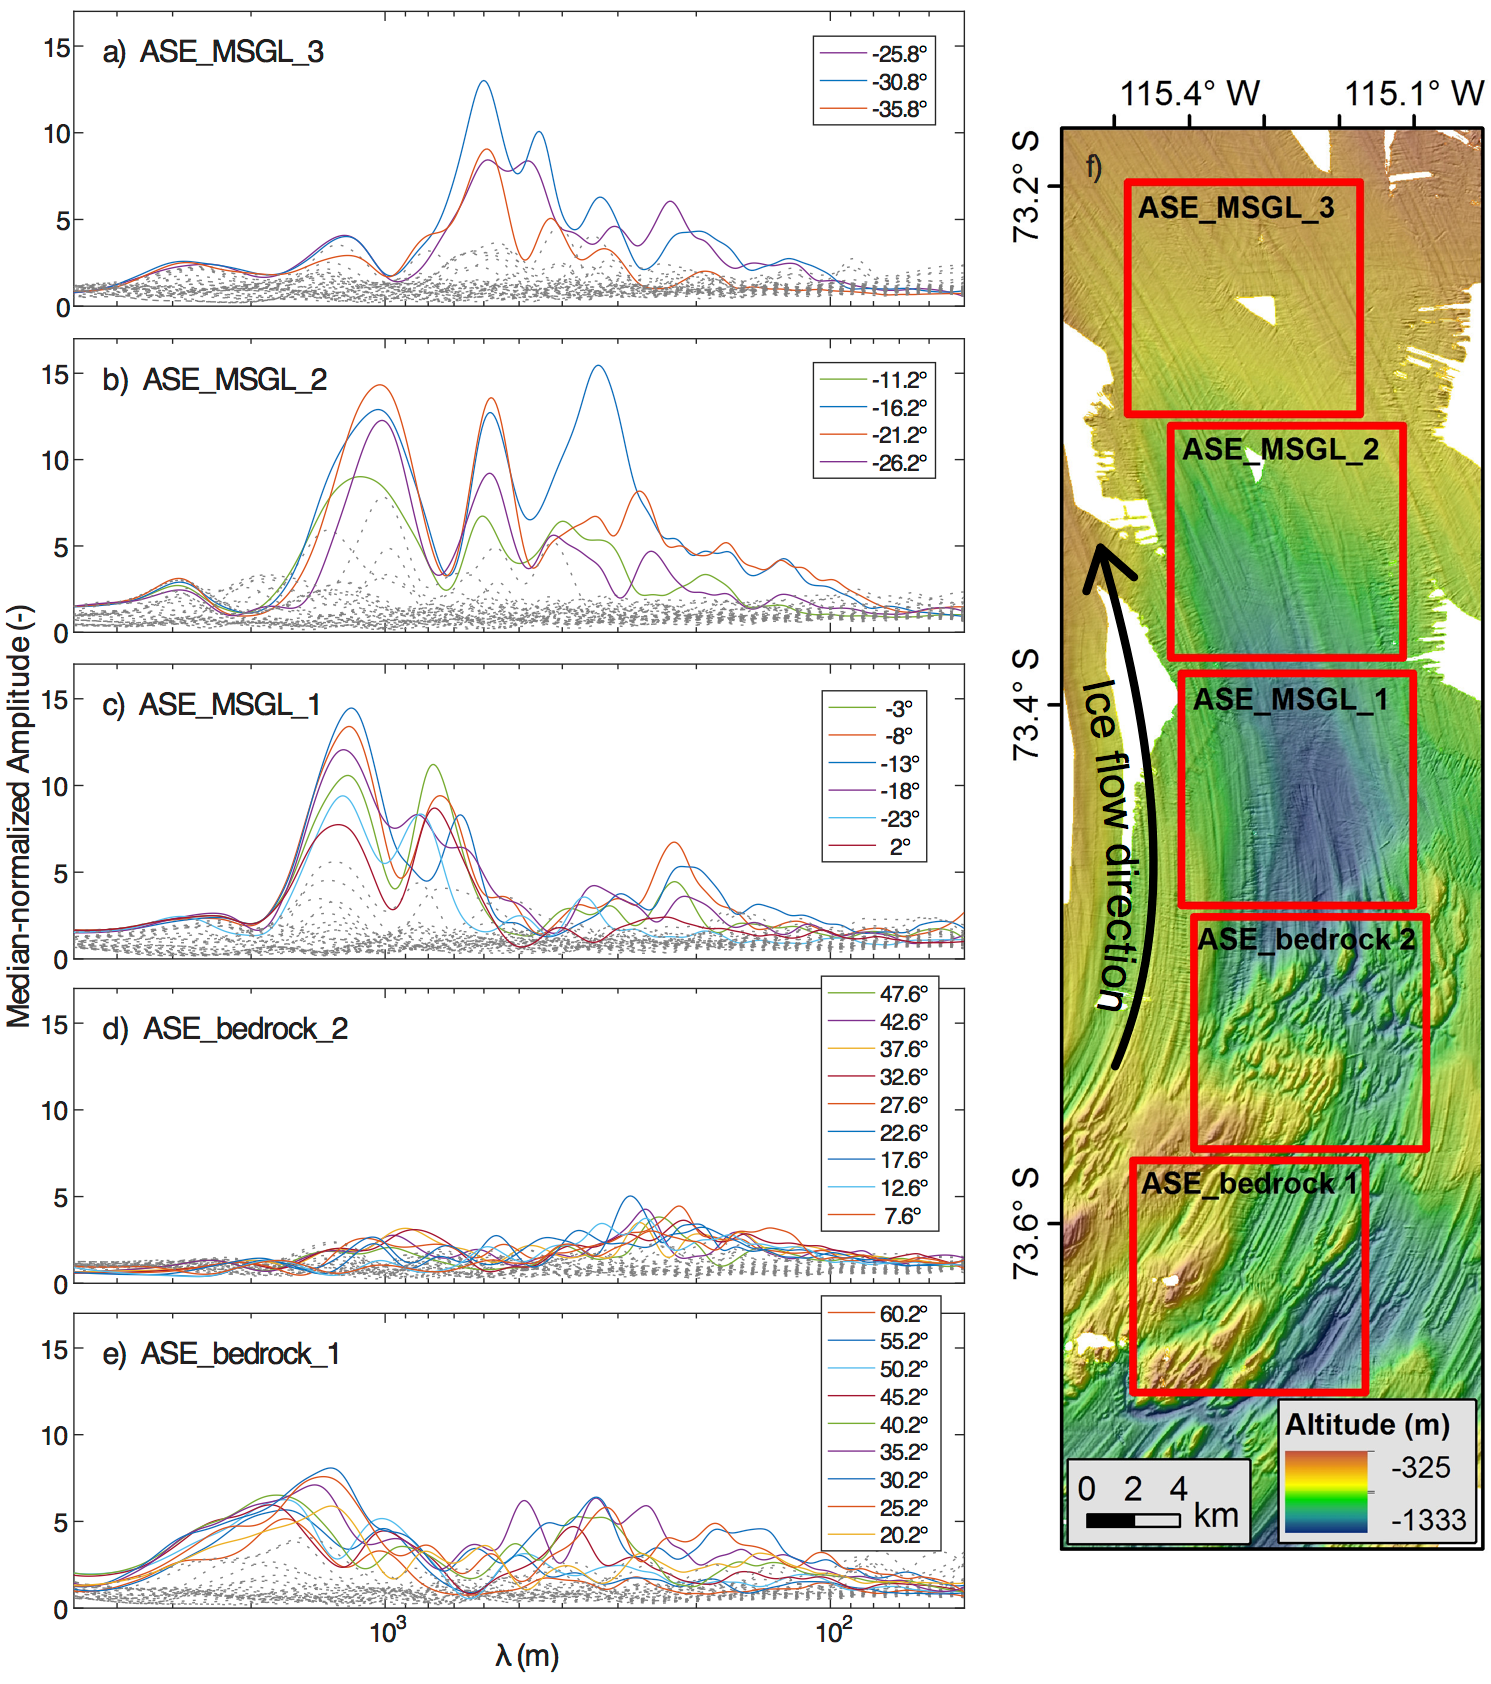 New papers on glacier thinning, form of MSGLs, and subglacial discharge plumes